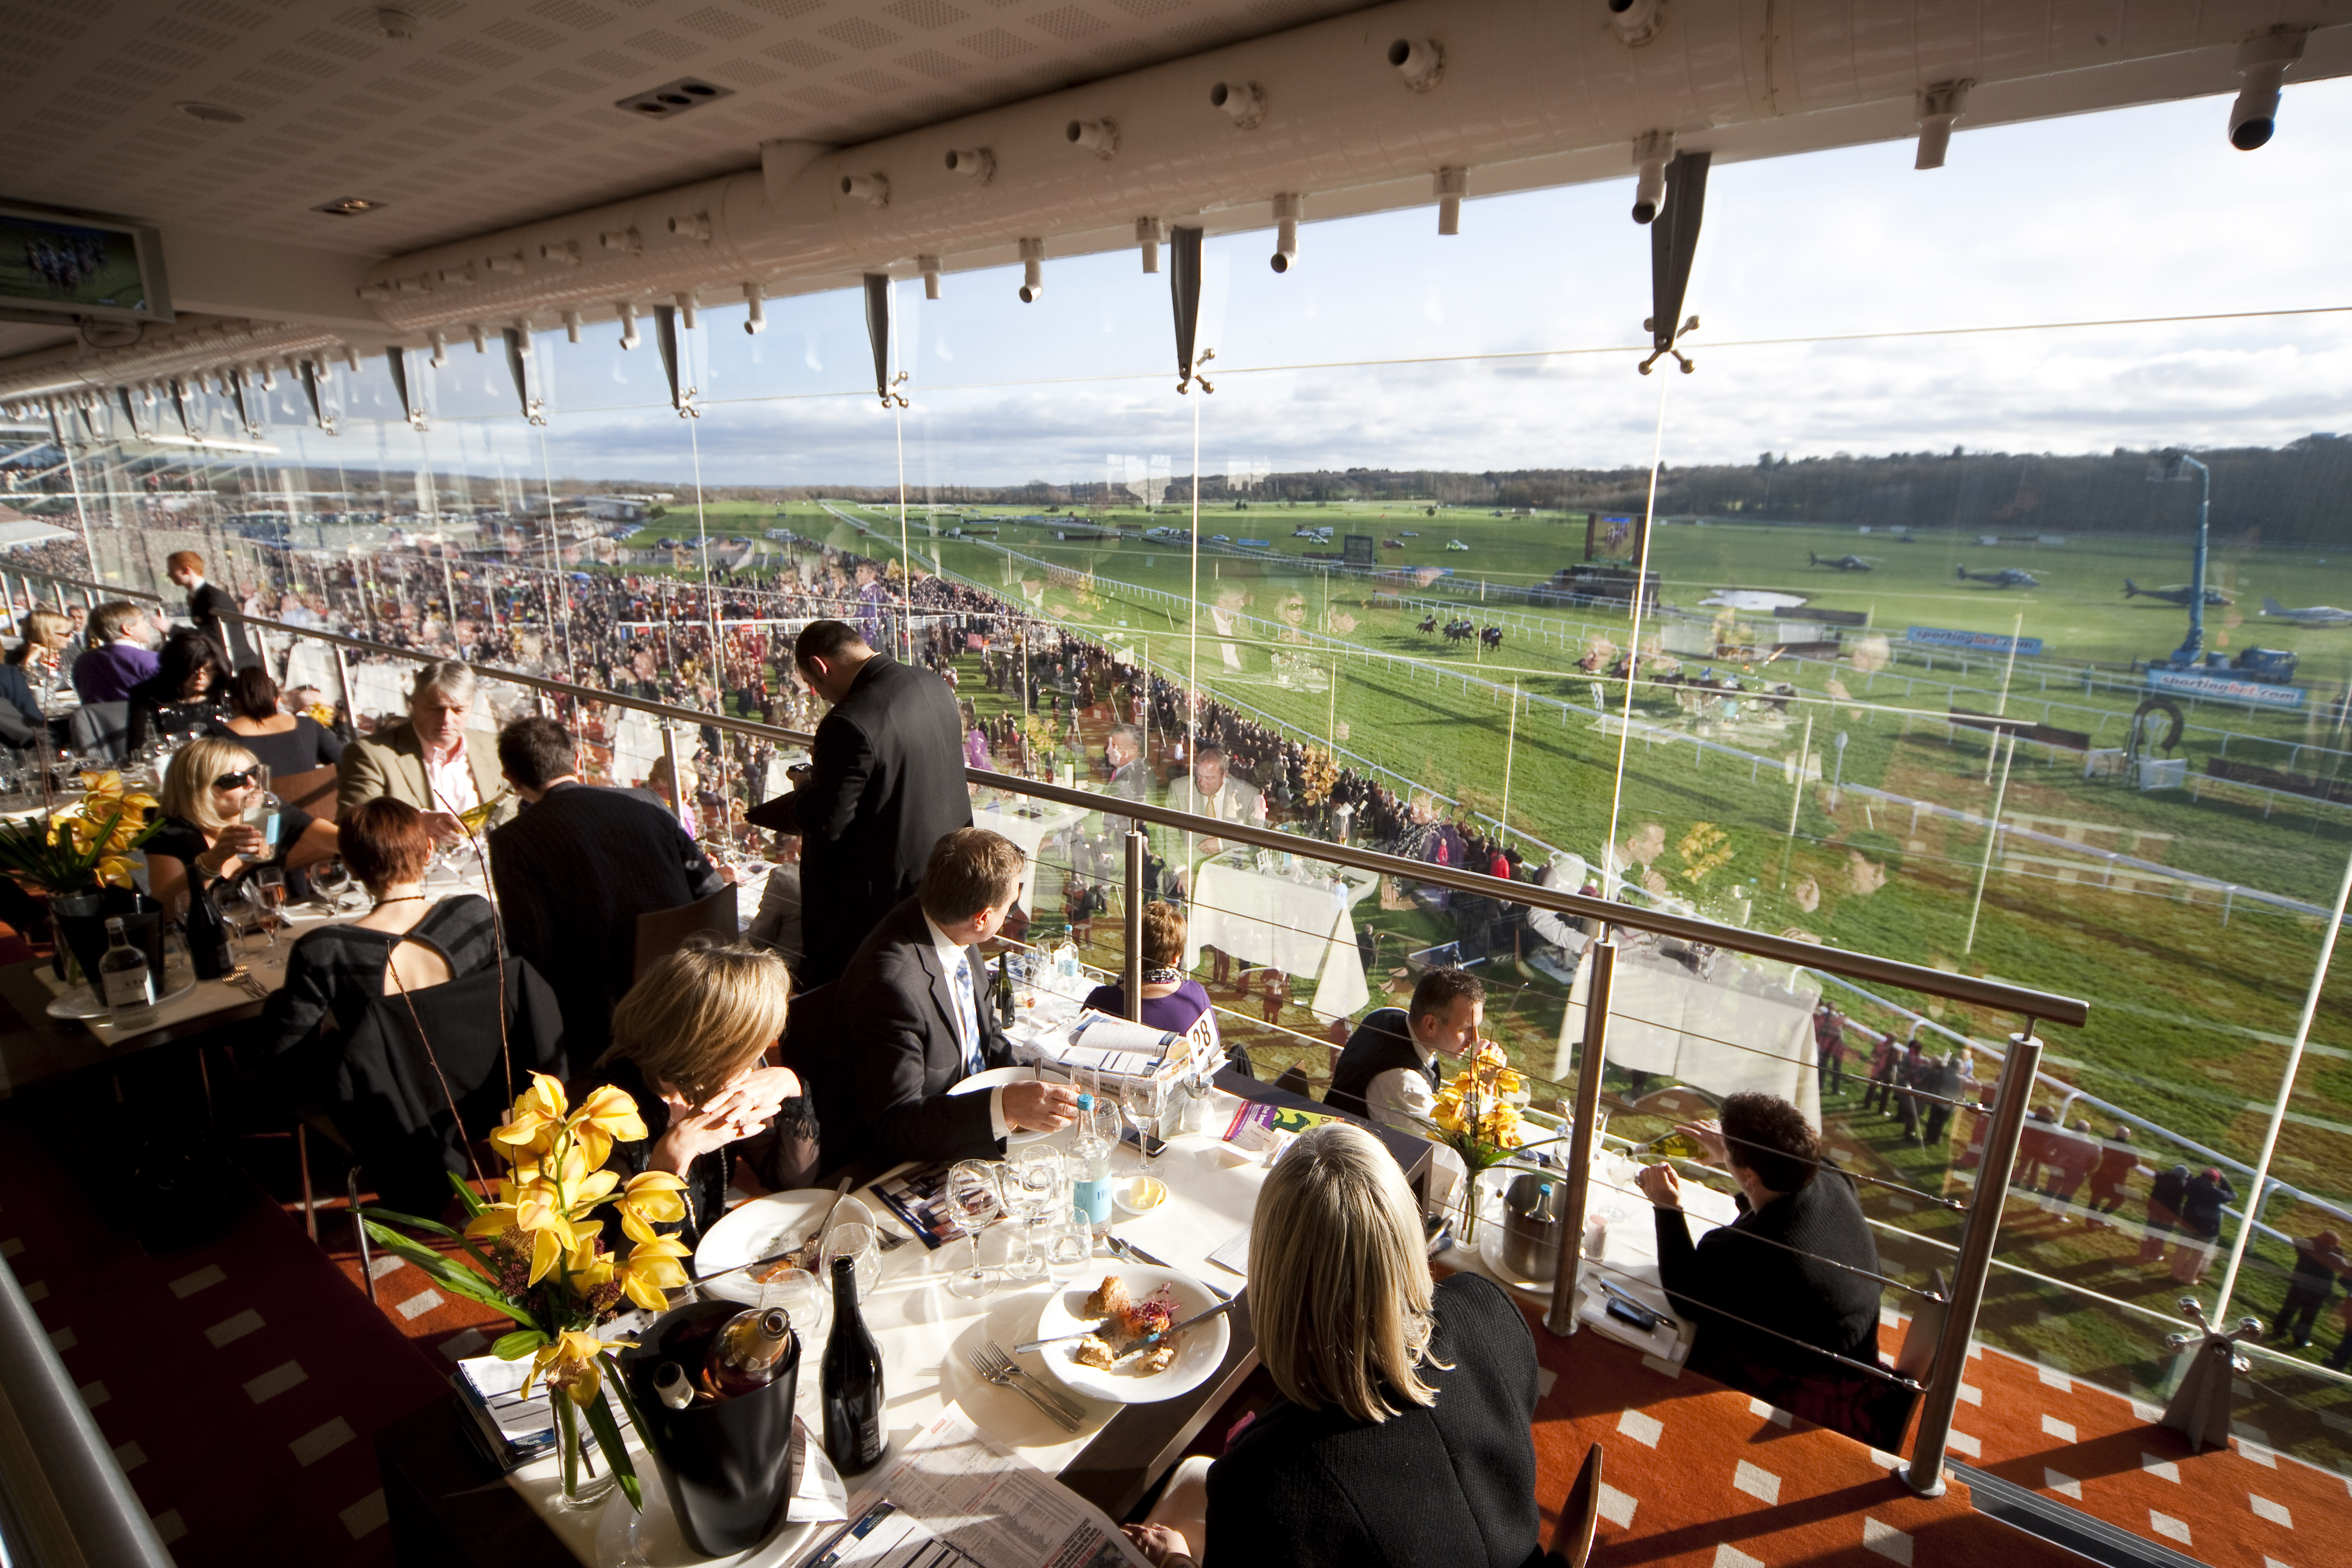 Splendid Home  Newbury Racecourse With Luxury Awardwinning Raceday Dining In Our Panoramic Restaurants And Hospitality  Suites With Captivating Garden Ceramics Sculptures Also Tiny Garden Ideas In Addition Edging Stones For Gardens And Pressure Wand For Garden Hose As Well As Garden Bin Storage Additionally Vegetarian Restaurants In Covent Garden From Newburyracecoursecouk With   Luxury Home  Newbury Racecourse With Captivating Awardwinning Raceday Dining In Our Panoramic Restaurants And Hospitality  Suites And Splendid Garden Ceramics Sculptures Also Tiny Garden Ideas In Addition Edging Stones For Gardens From Newburyracecoursecouk